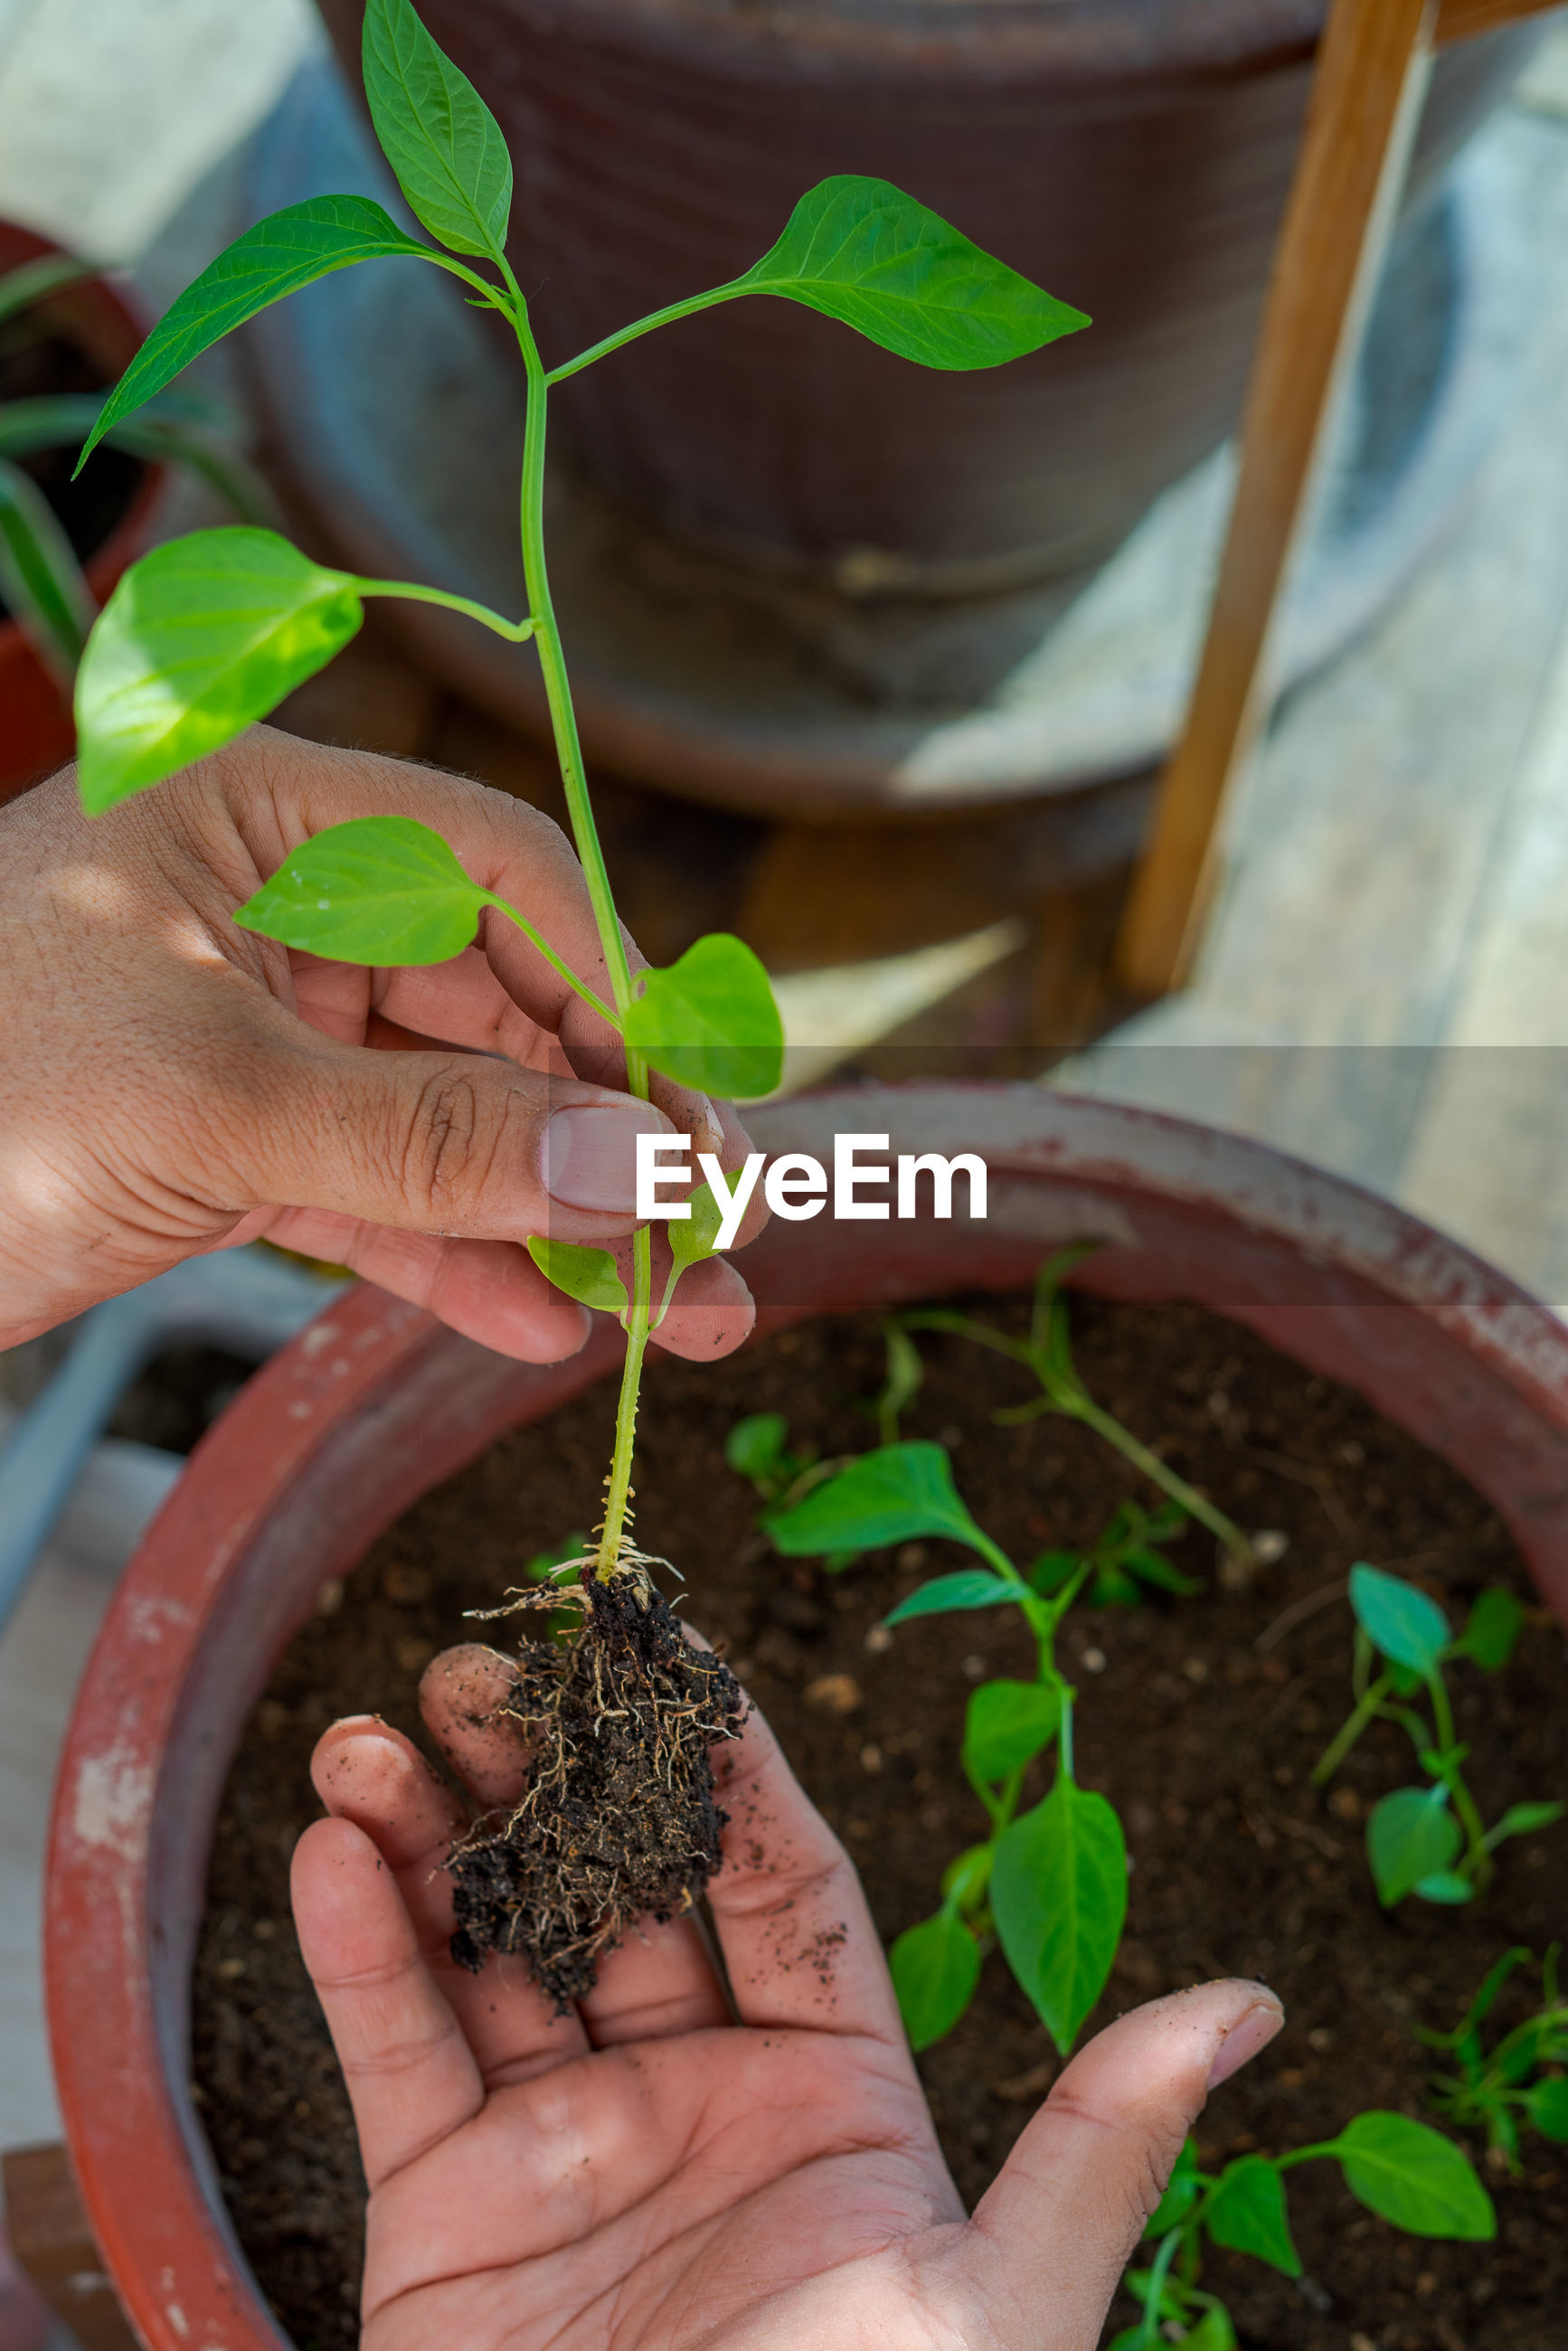 CROPPED IMAGE OF PERSON HOLDING POTTED PLANT OUTDOORS